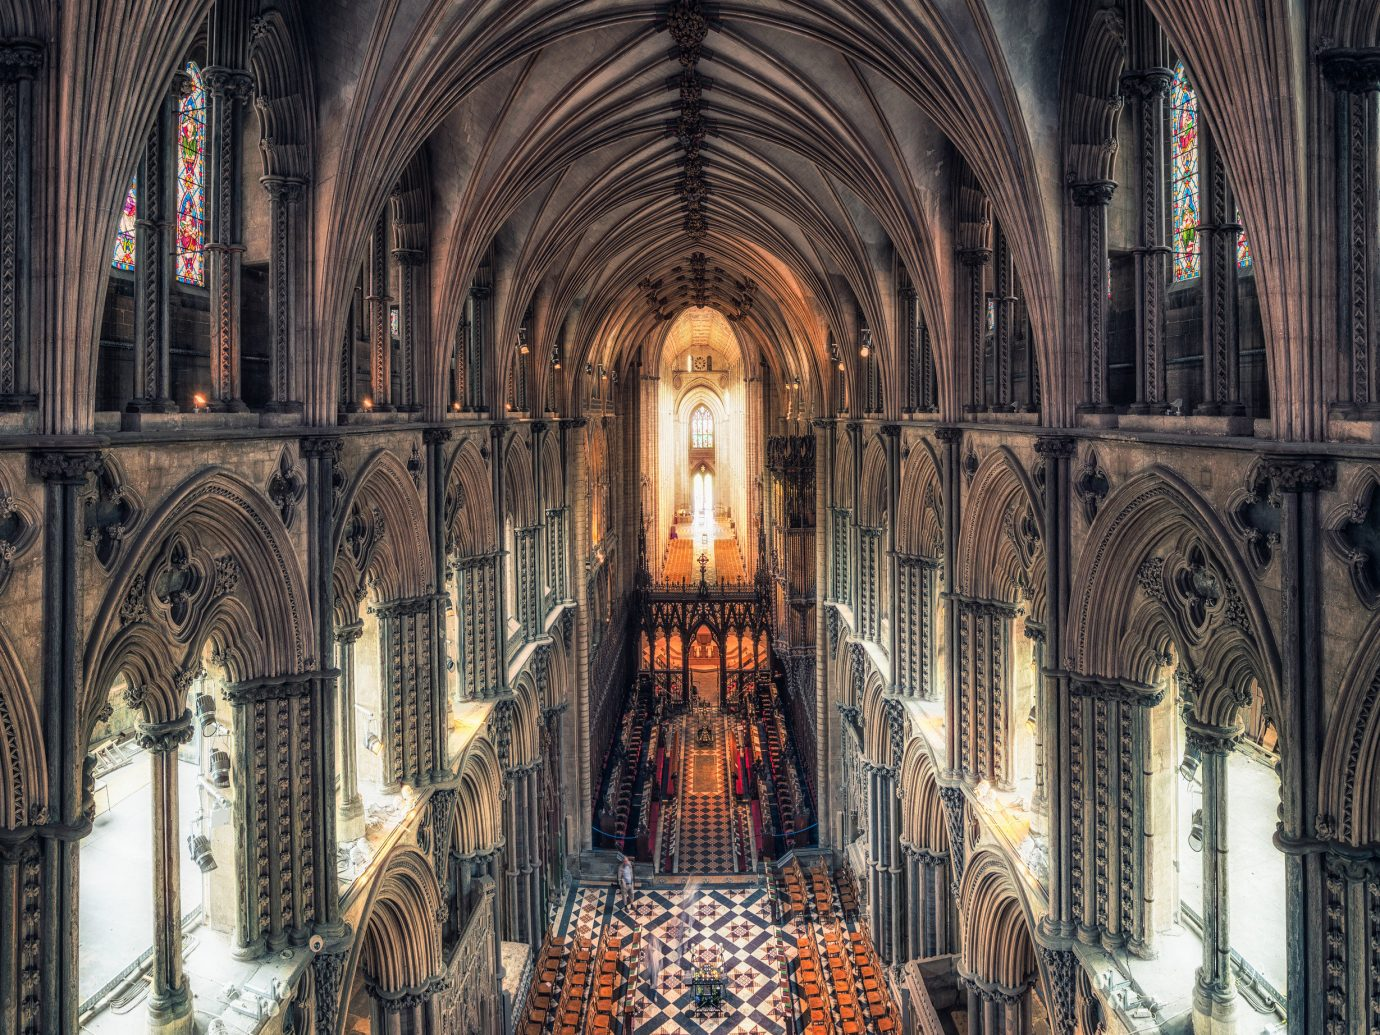 Arts + Culture Offbeat building cathedral indoor place of worship medieval architecture chapel byzantine architecture religious institute vault gothic architecture Church basilica arch symmetry historic site altar crypt stock photography window abbey several